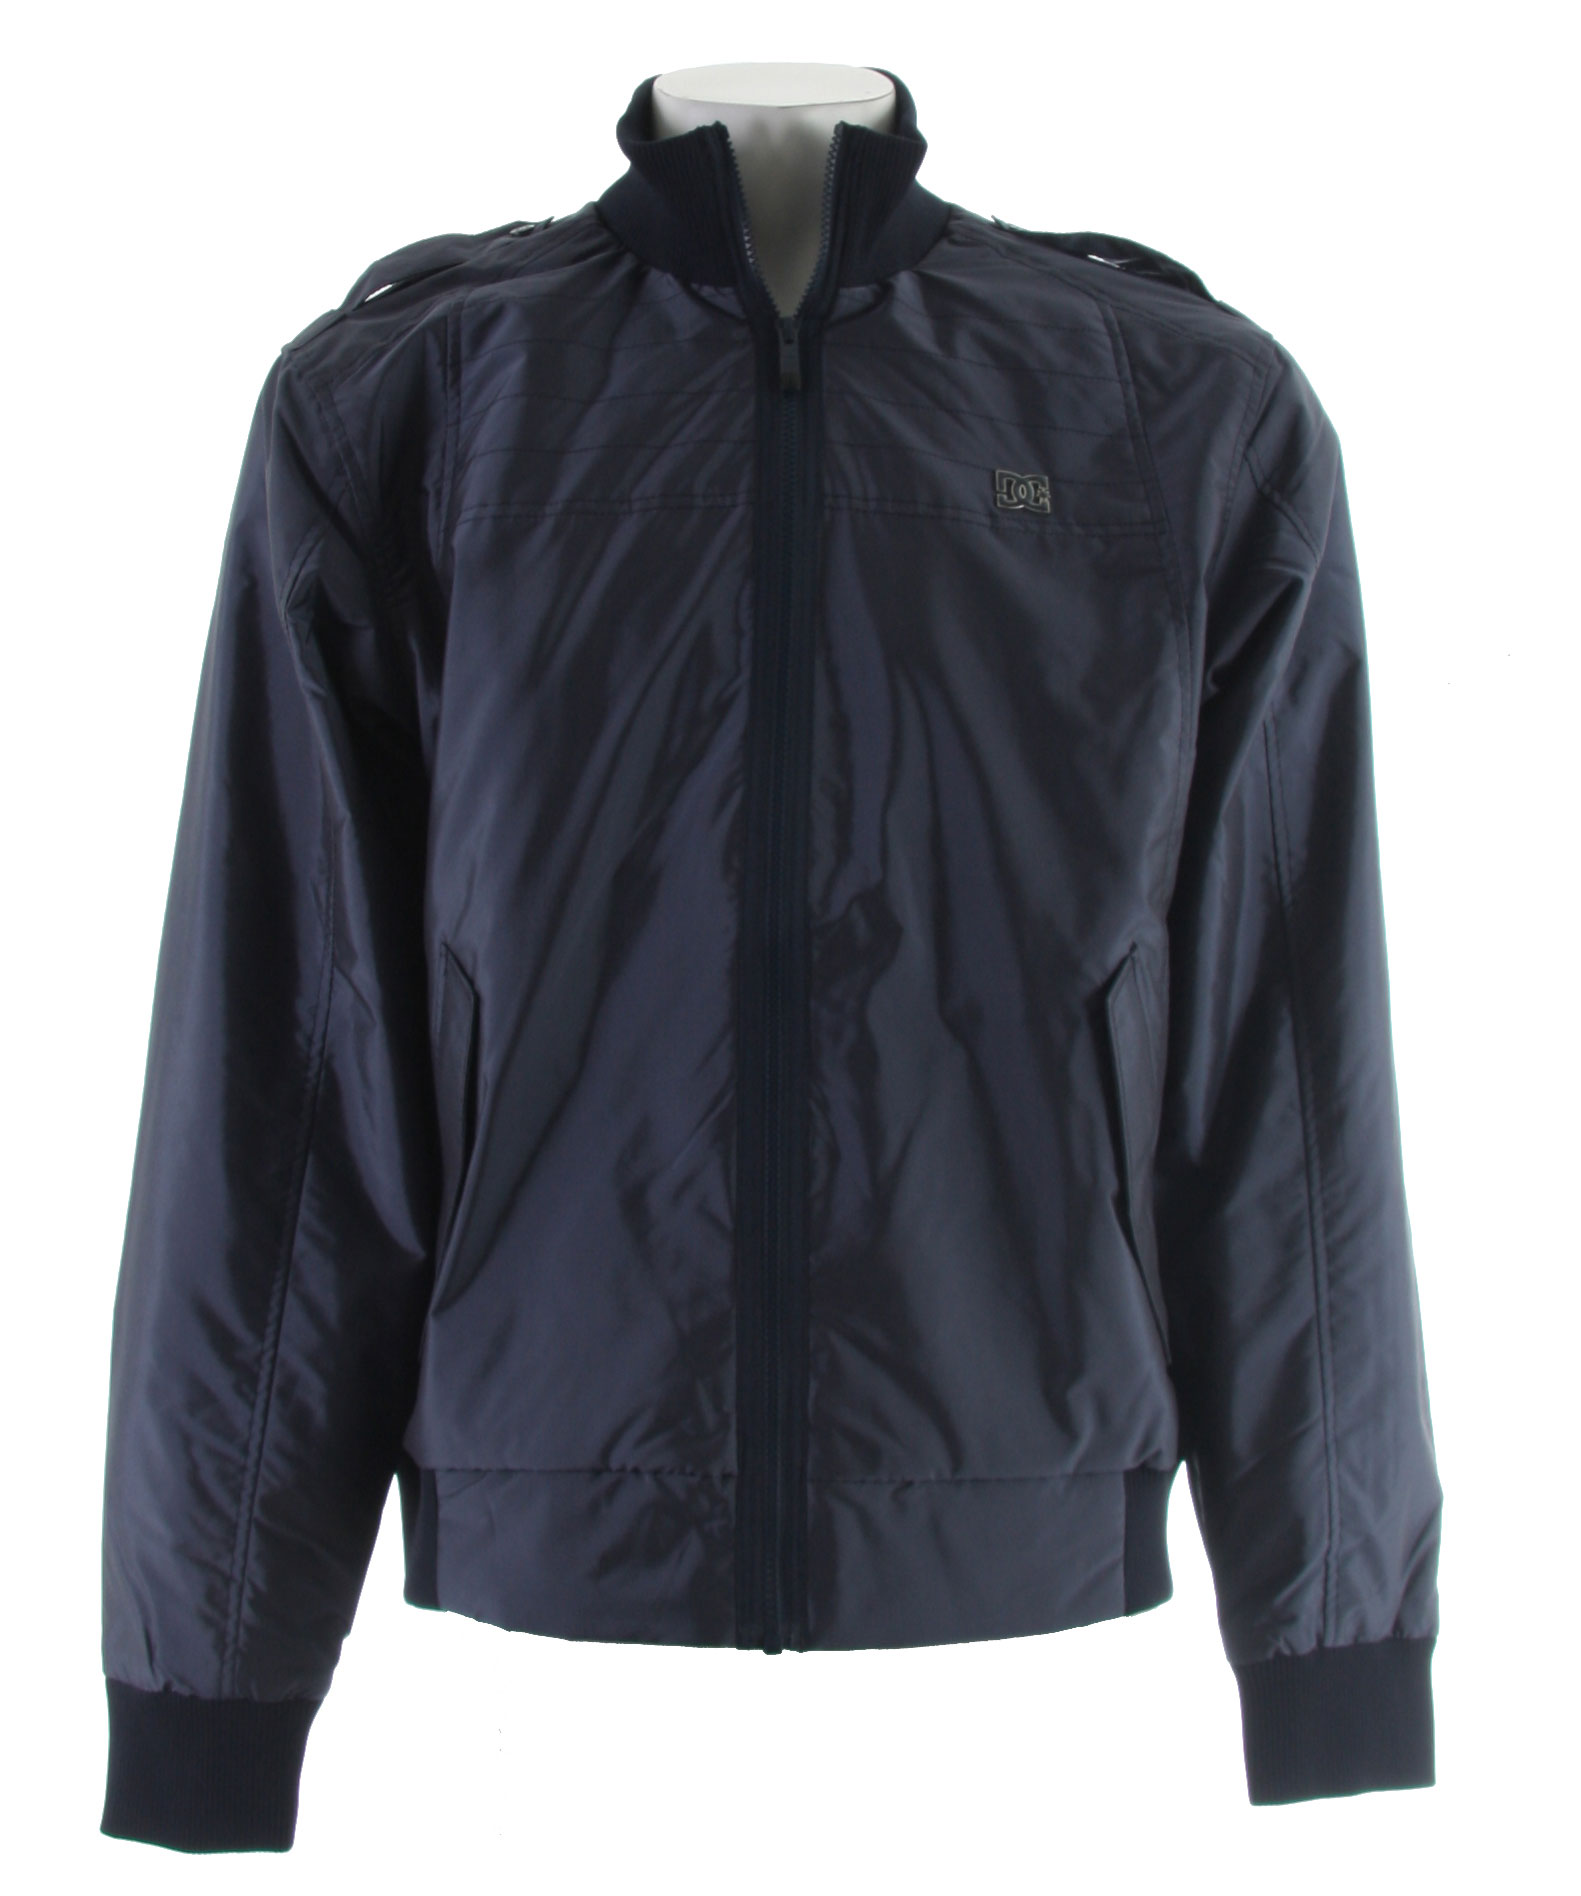 Entertainment Key Features of the DC Bryce Jacket True Navy: 30g Poly-Insulated Standard Fit Streetwear Jacket 2 Handwarmer Pockets - $47.95